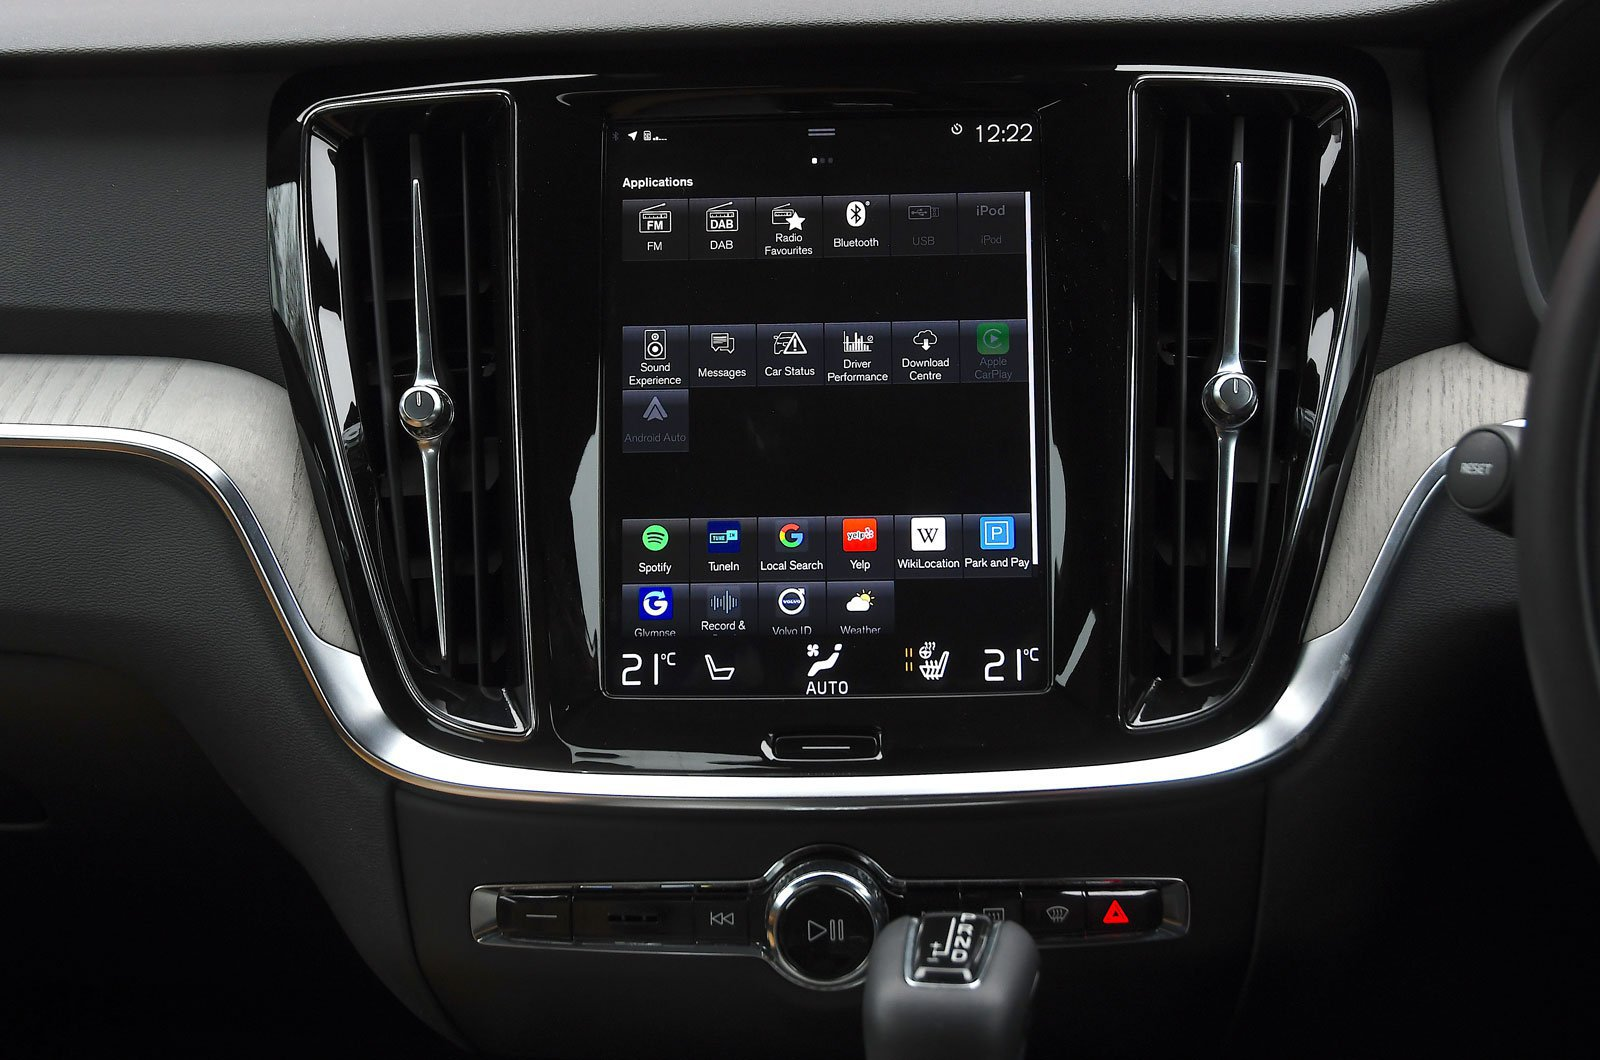 Volvo infotainment screen